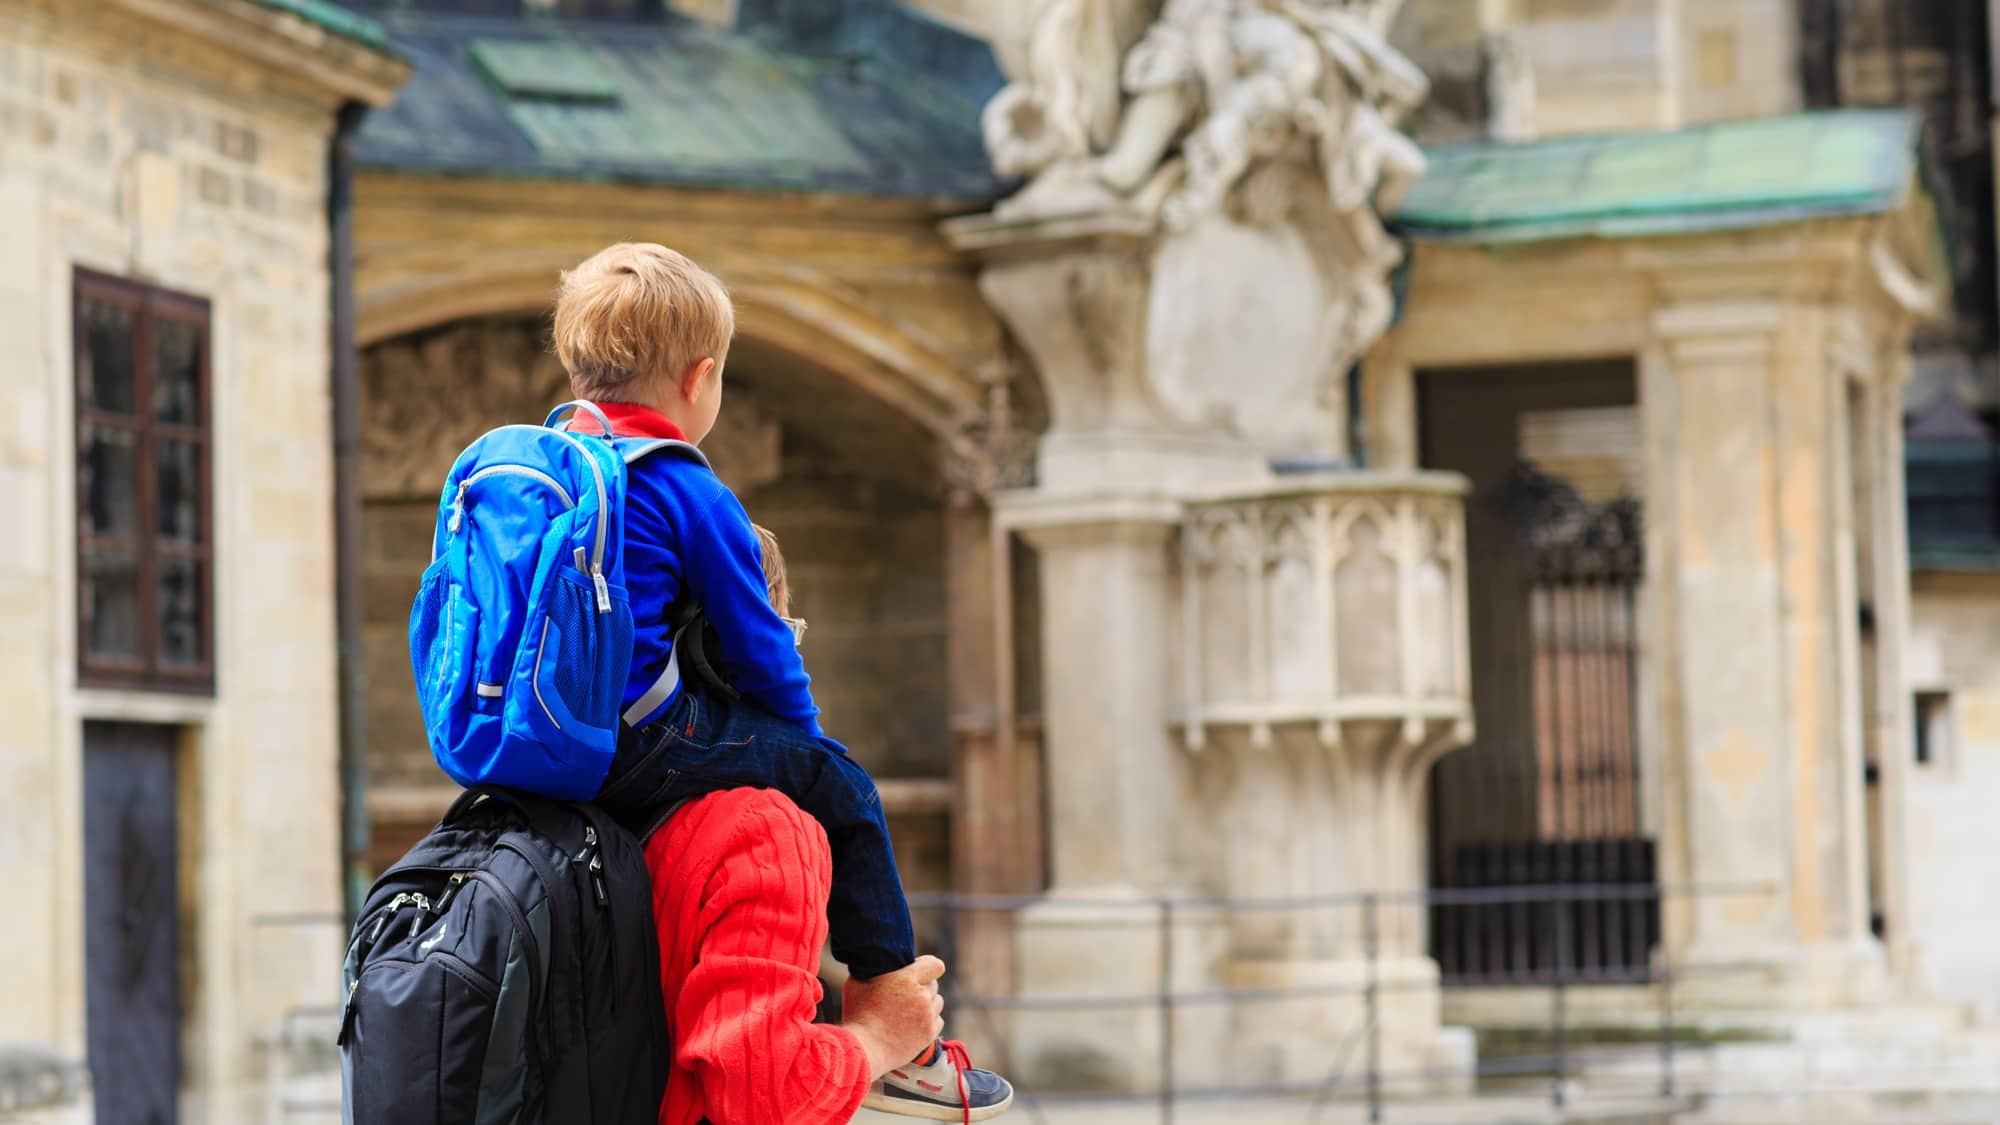 Father with son on his shoulders visiting Europe